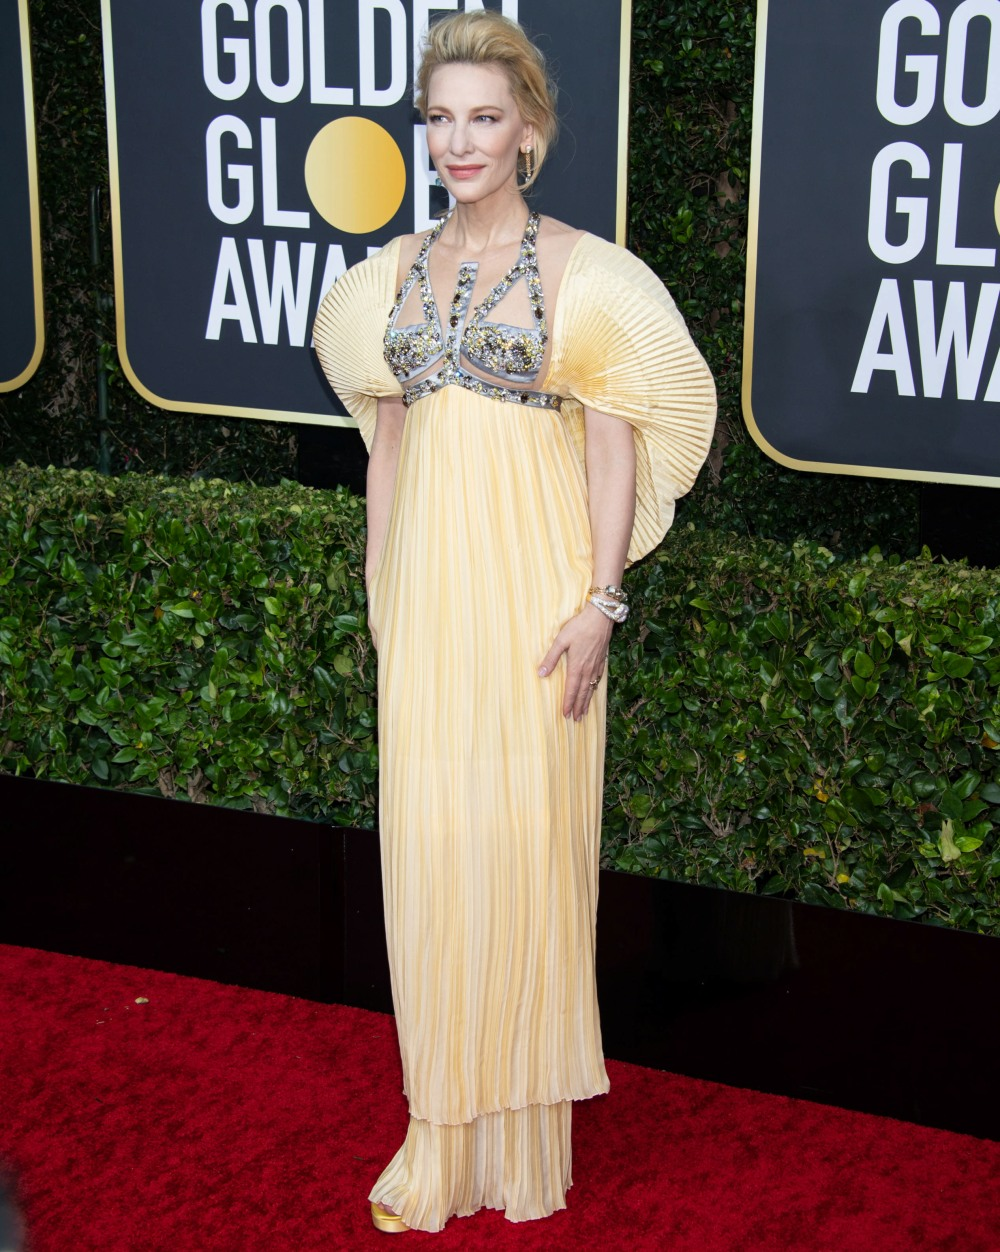 Nominee, Cate Blanchett, arrives at the 77th Annual Golden Globe Awards at the Beverly Hilton in Beverly Hills, CA on Sunday, January 5, 2020.